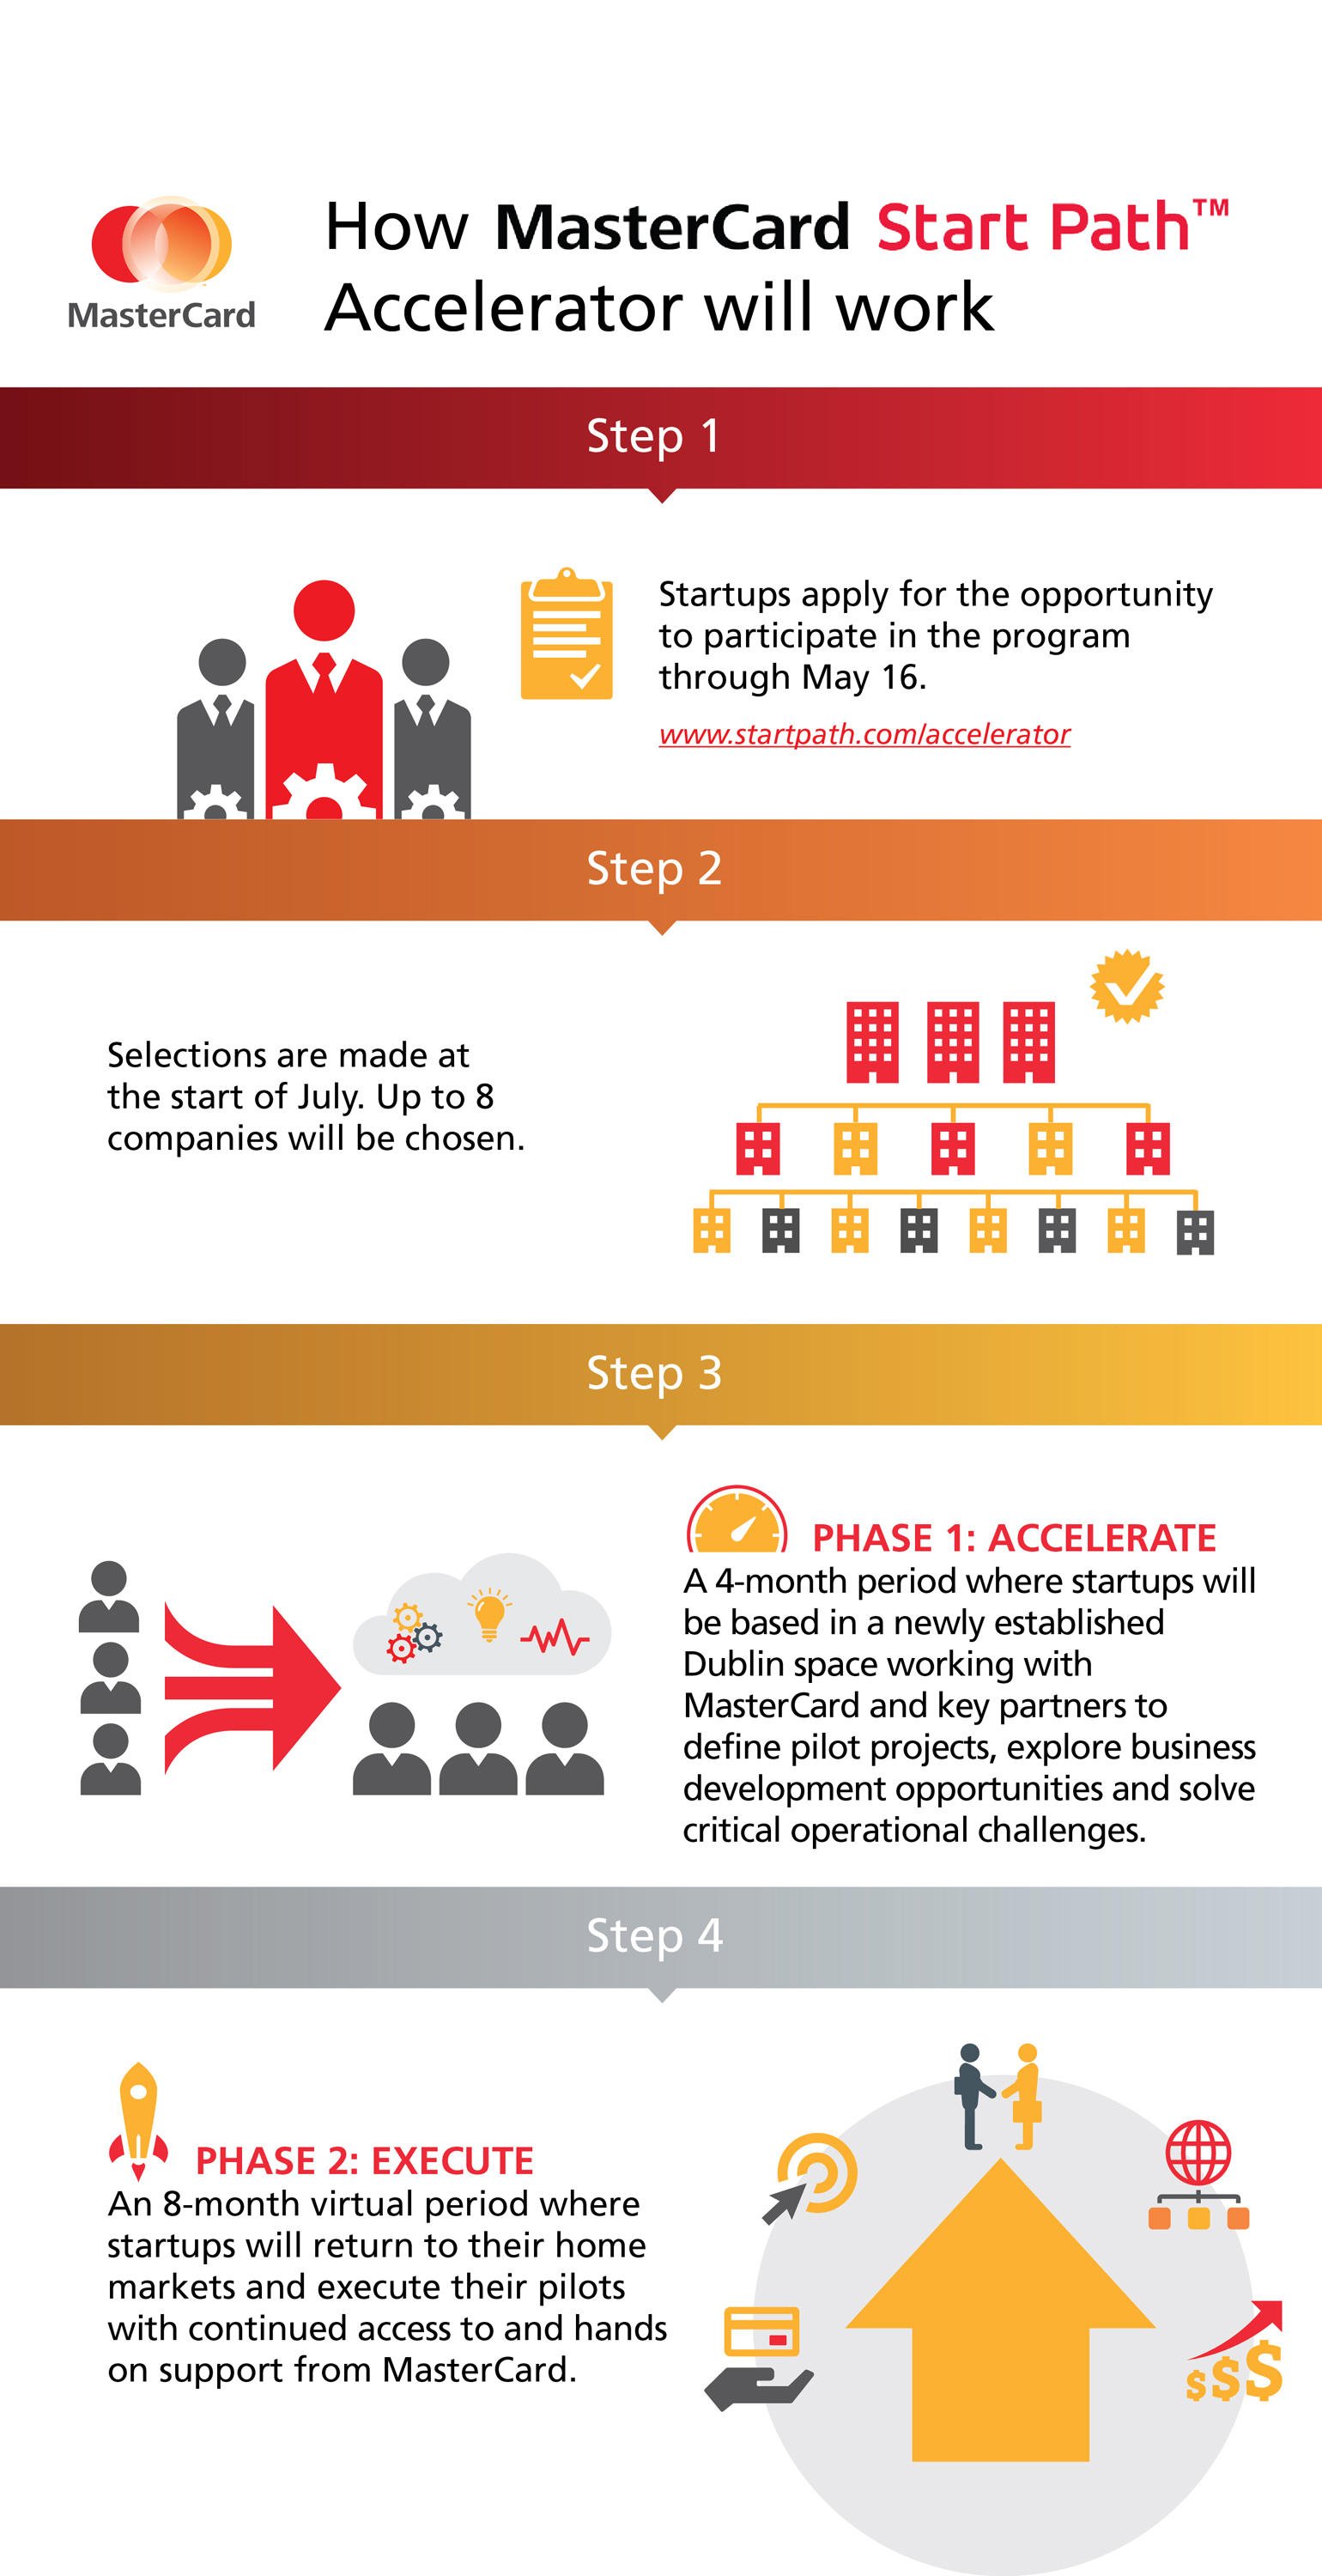 MasterCard Start Path Accelerator offering Customized Support for startups